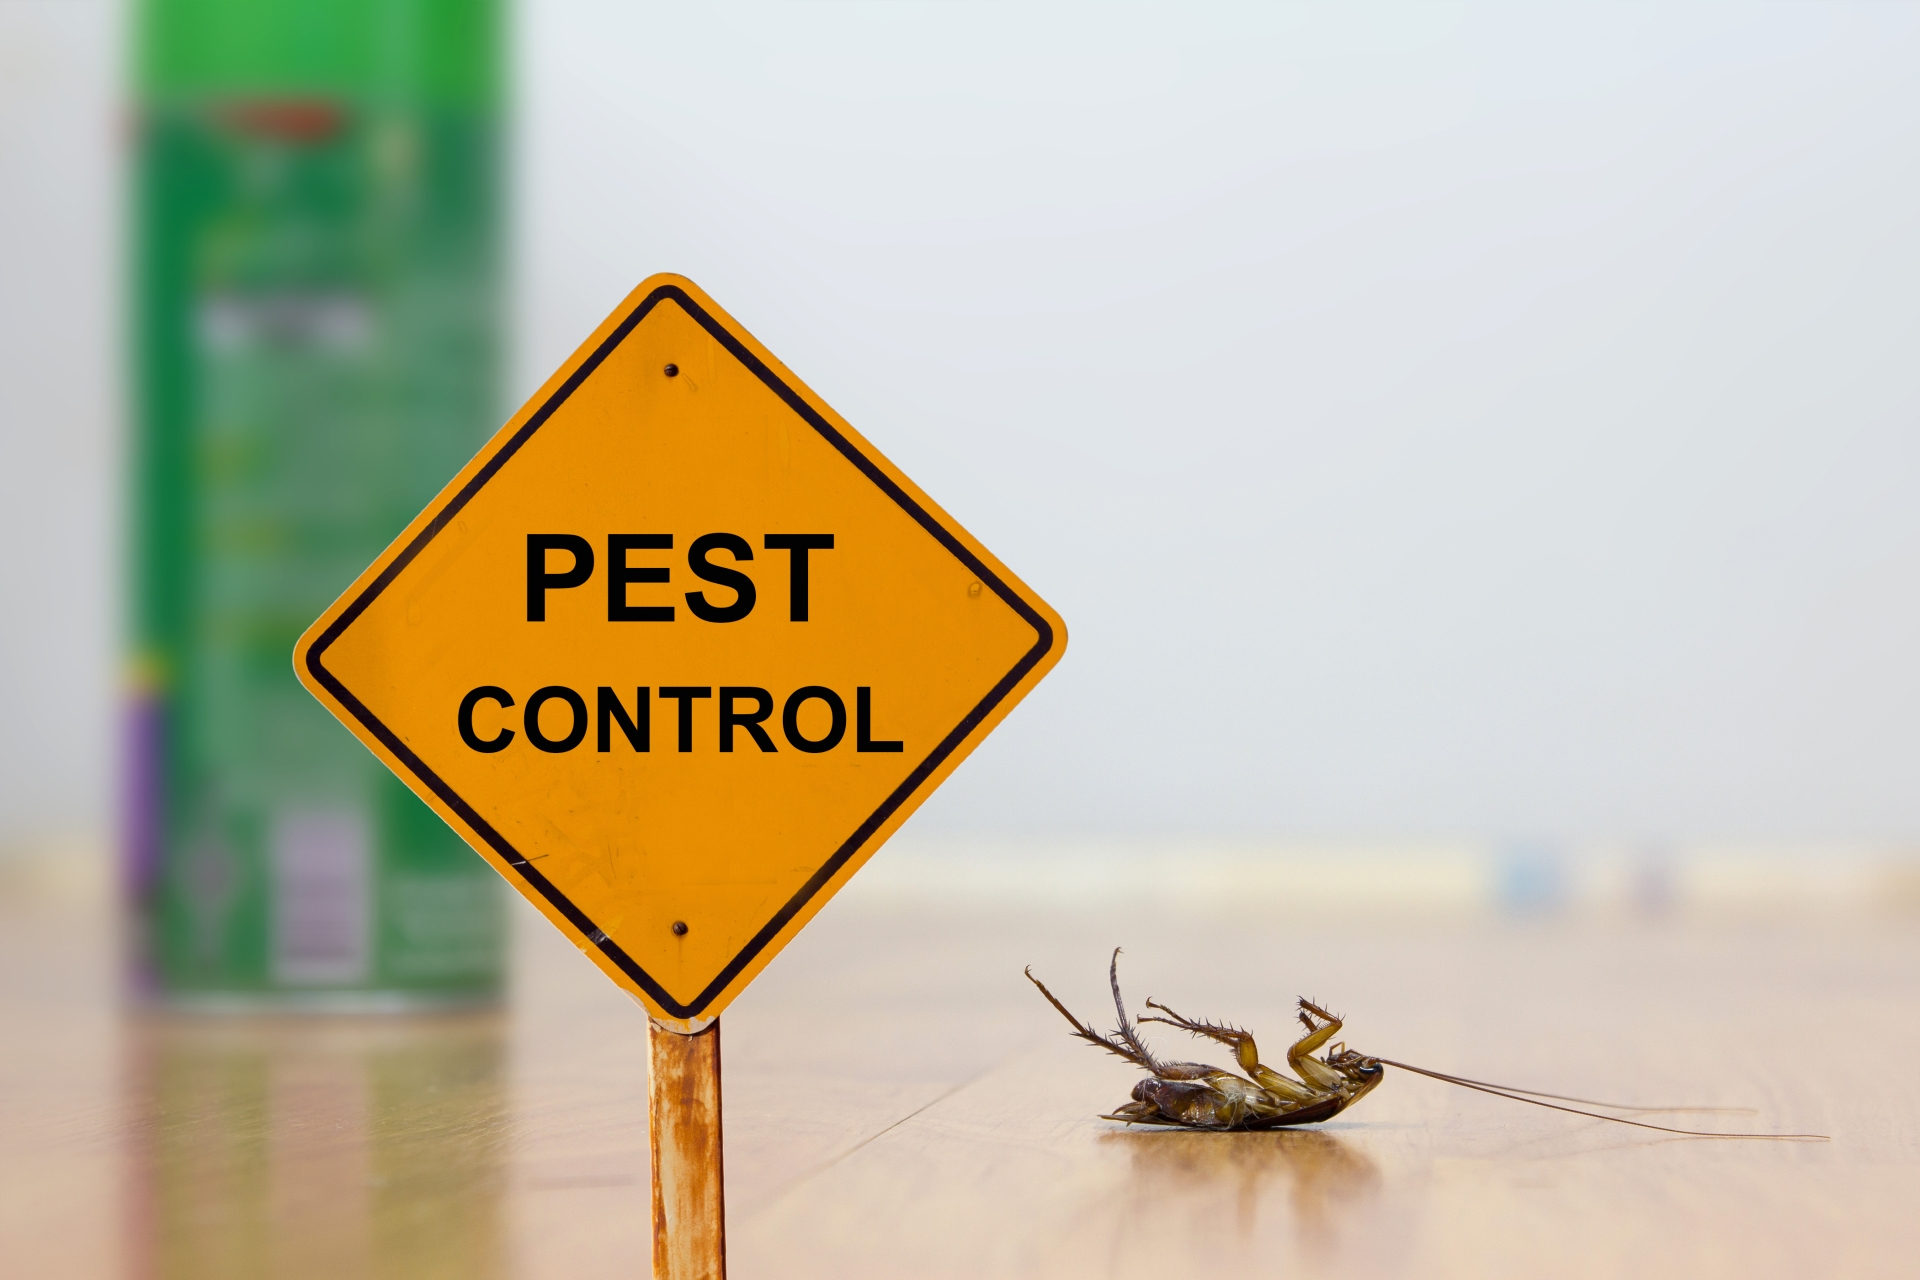 24 Hour Pest Control, Pest Control in Orsett, Chafford Hundred, RM16. Call Now 020 8166 9746